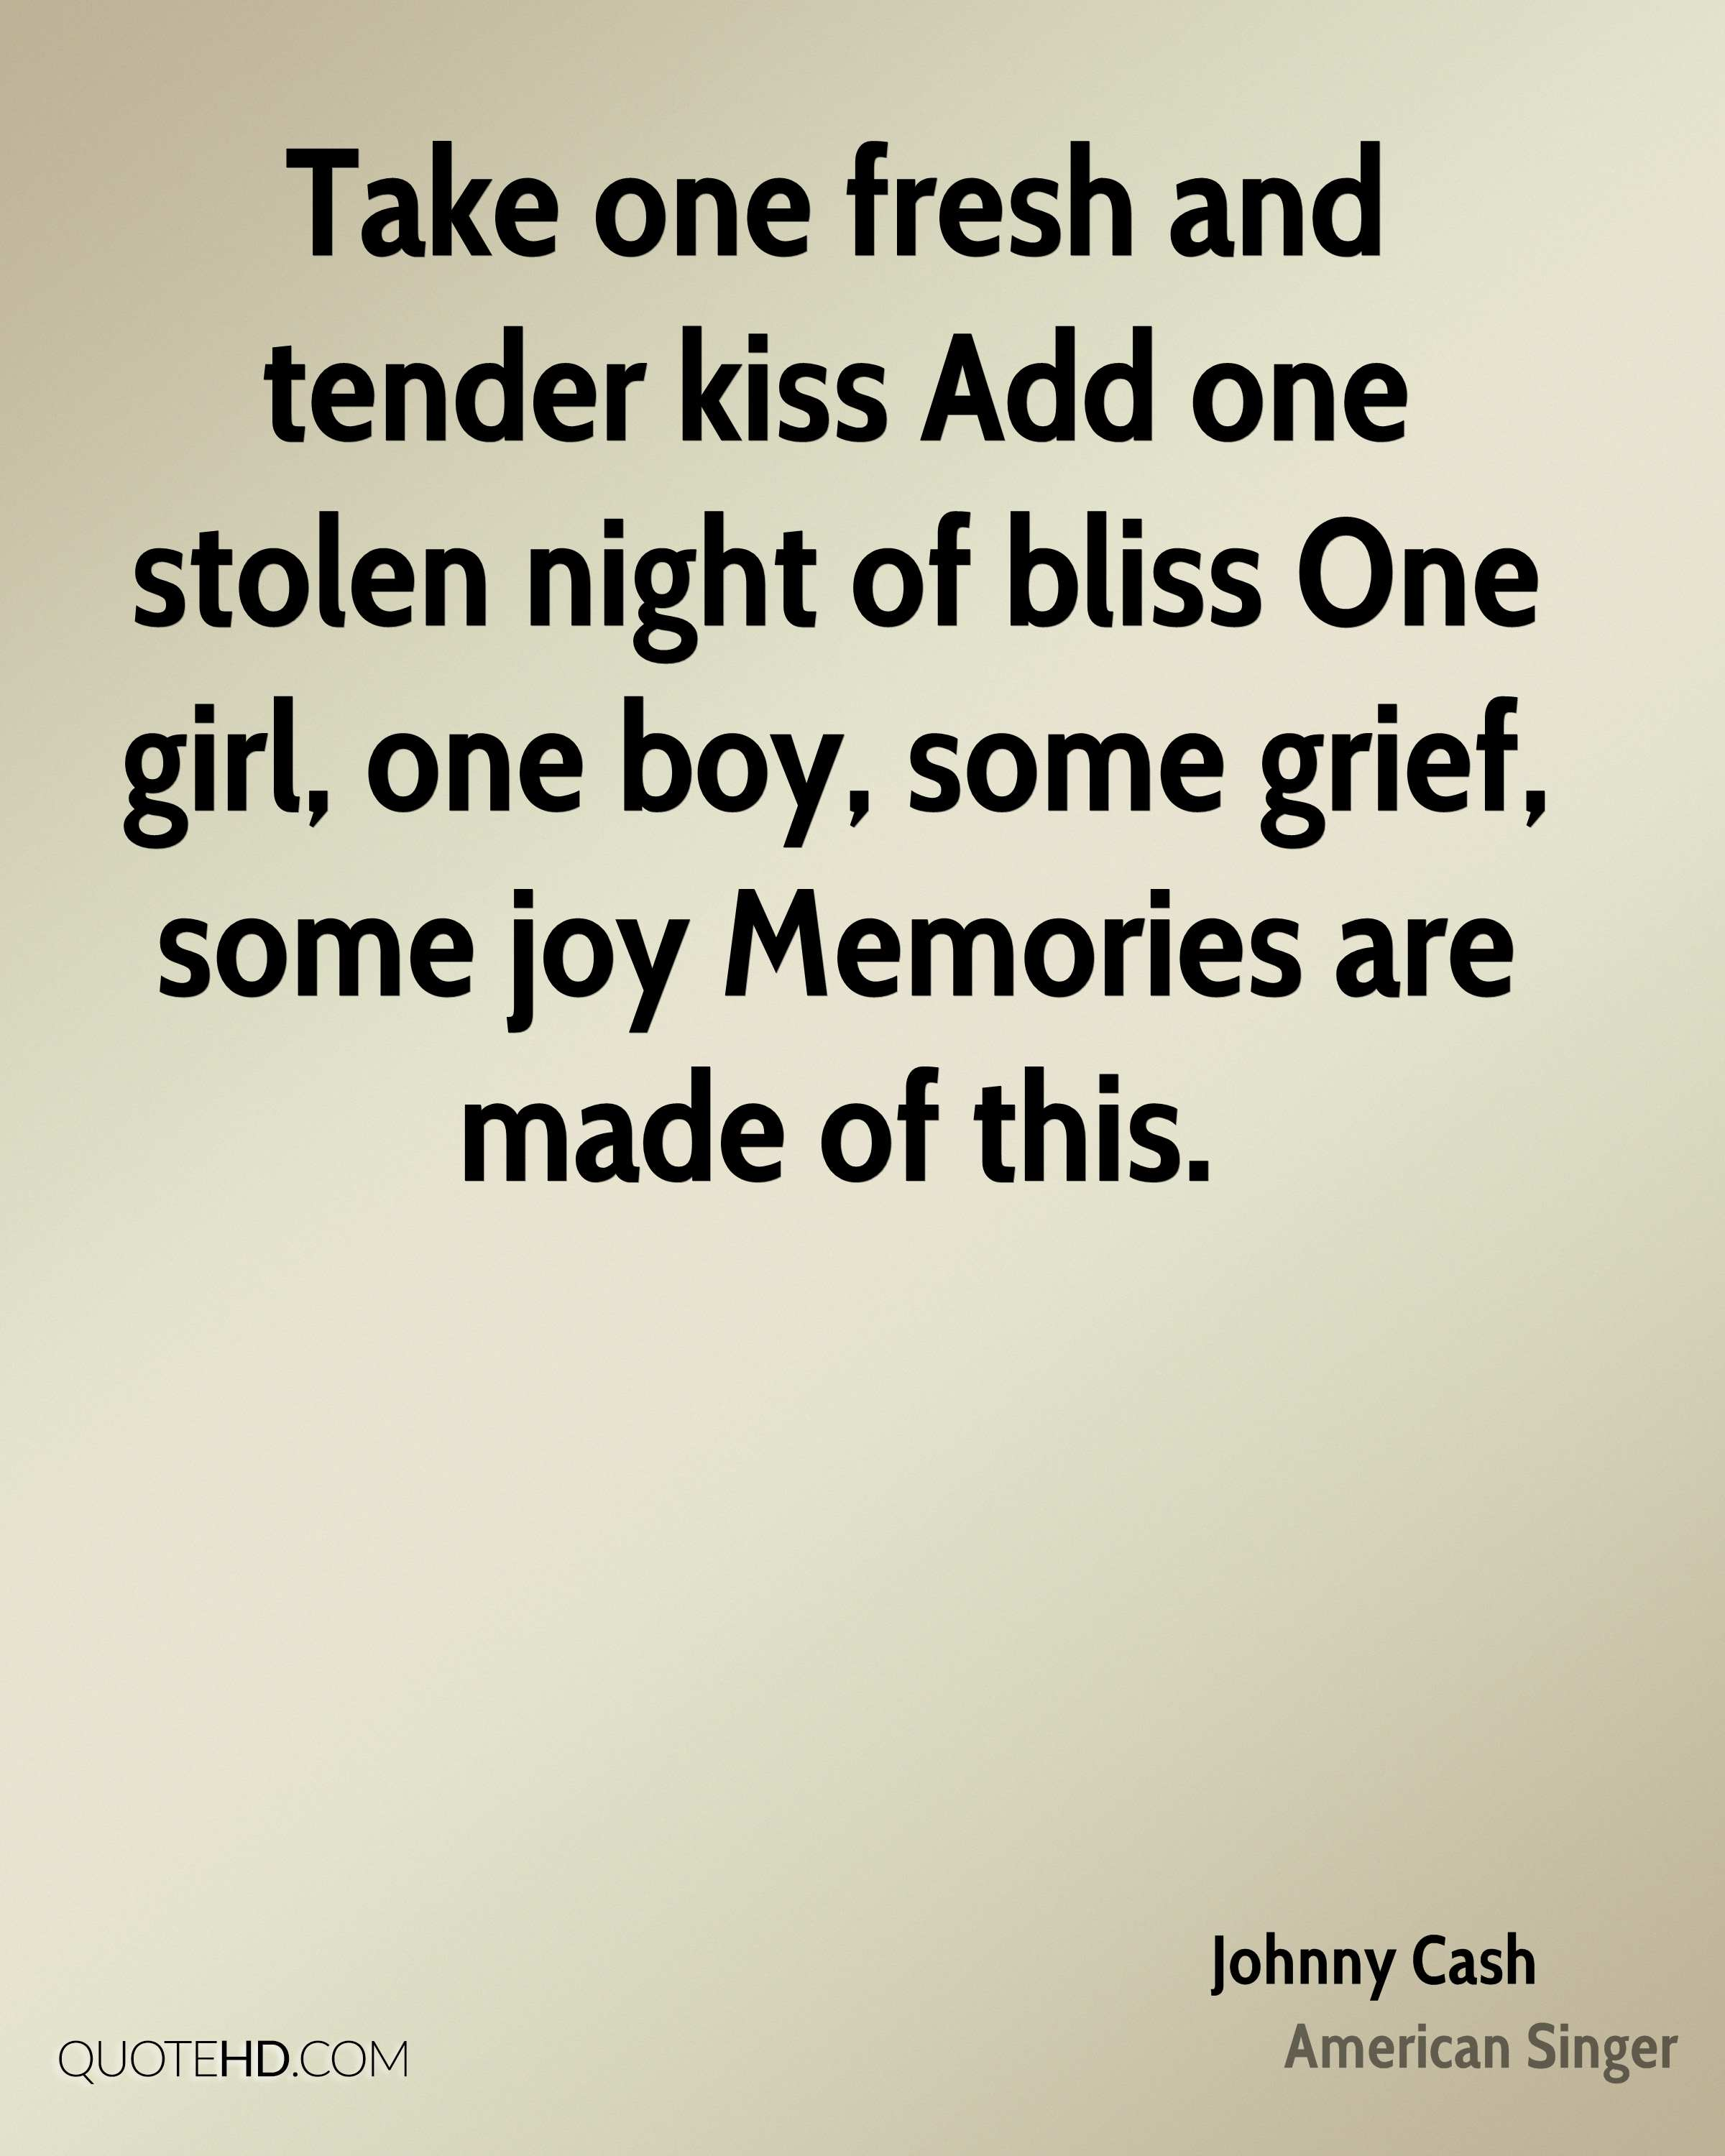 Take one fresh and tender kiss Add one stolen night of bliss One girl, one boy, some grief, some joy Memories are made of this.